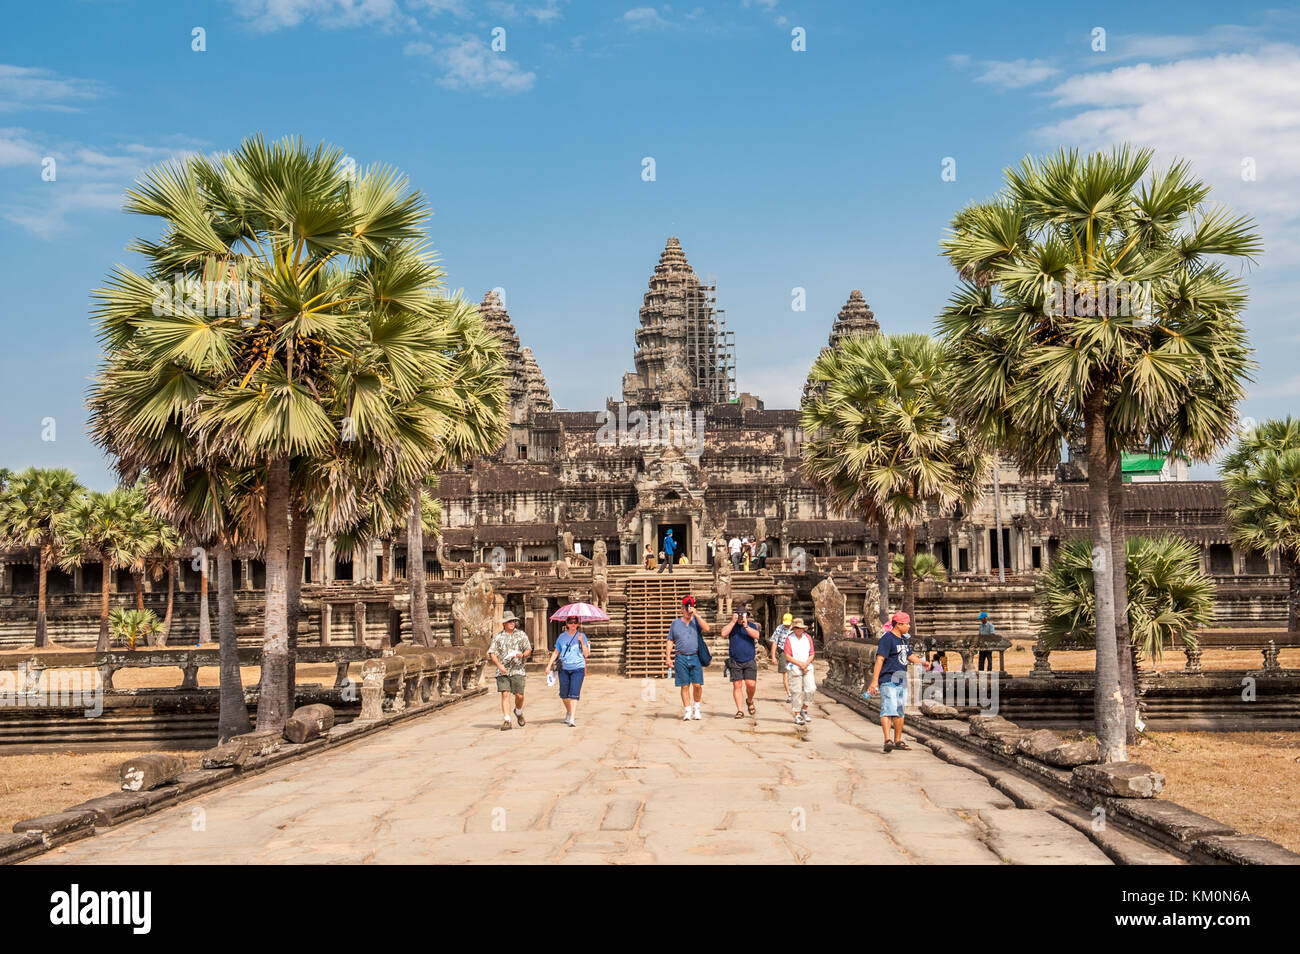 Tourists at Angkor Wat in Siem Reap, Cambodia. Angkor Wat is a 12th century temple and a world famous UNESCO World - Stock Image